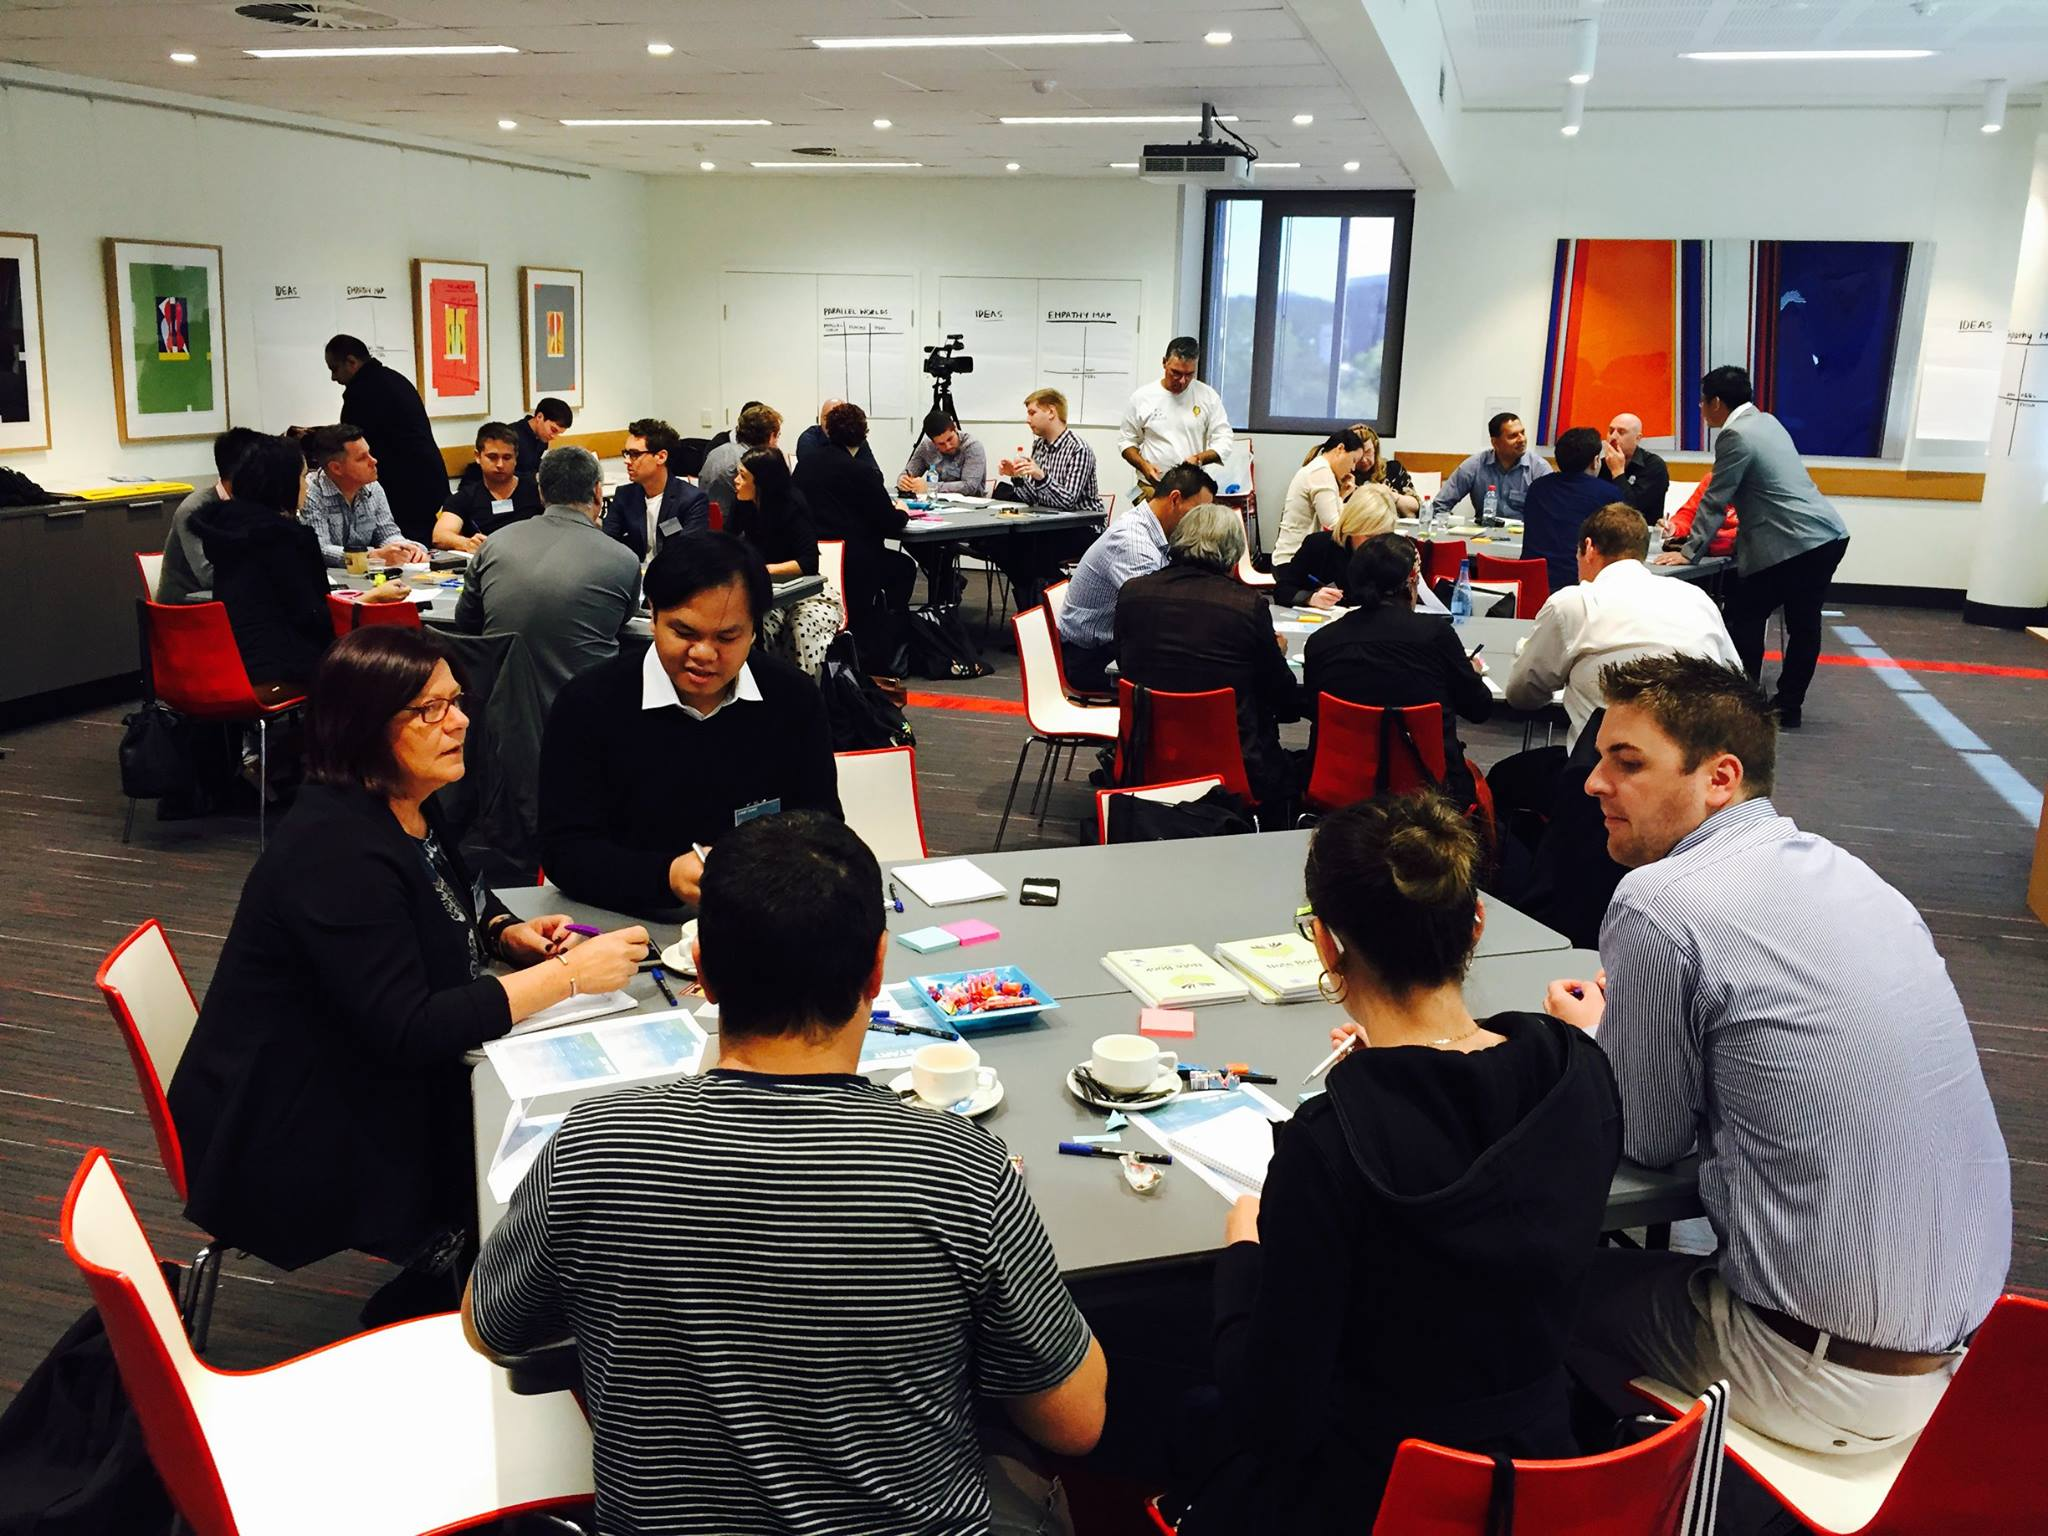 Design Thinking workshop with Indigenous business.